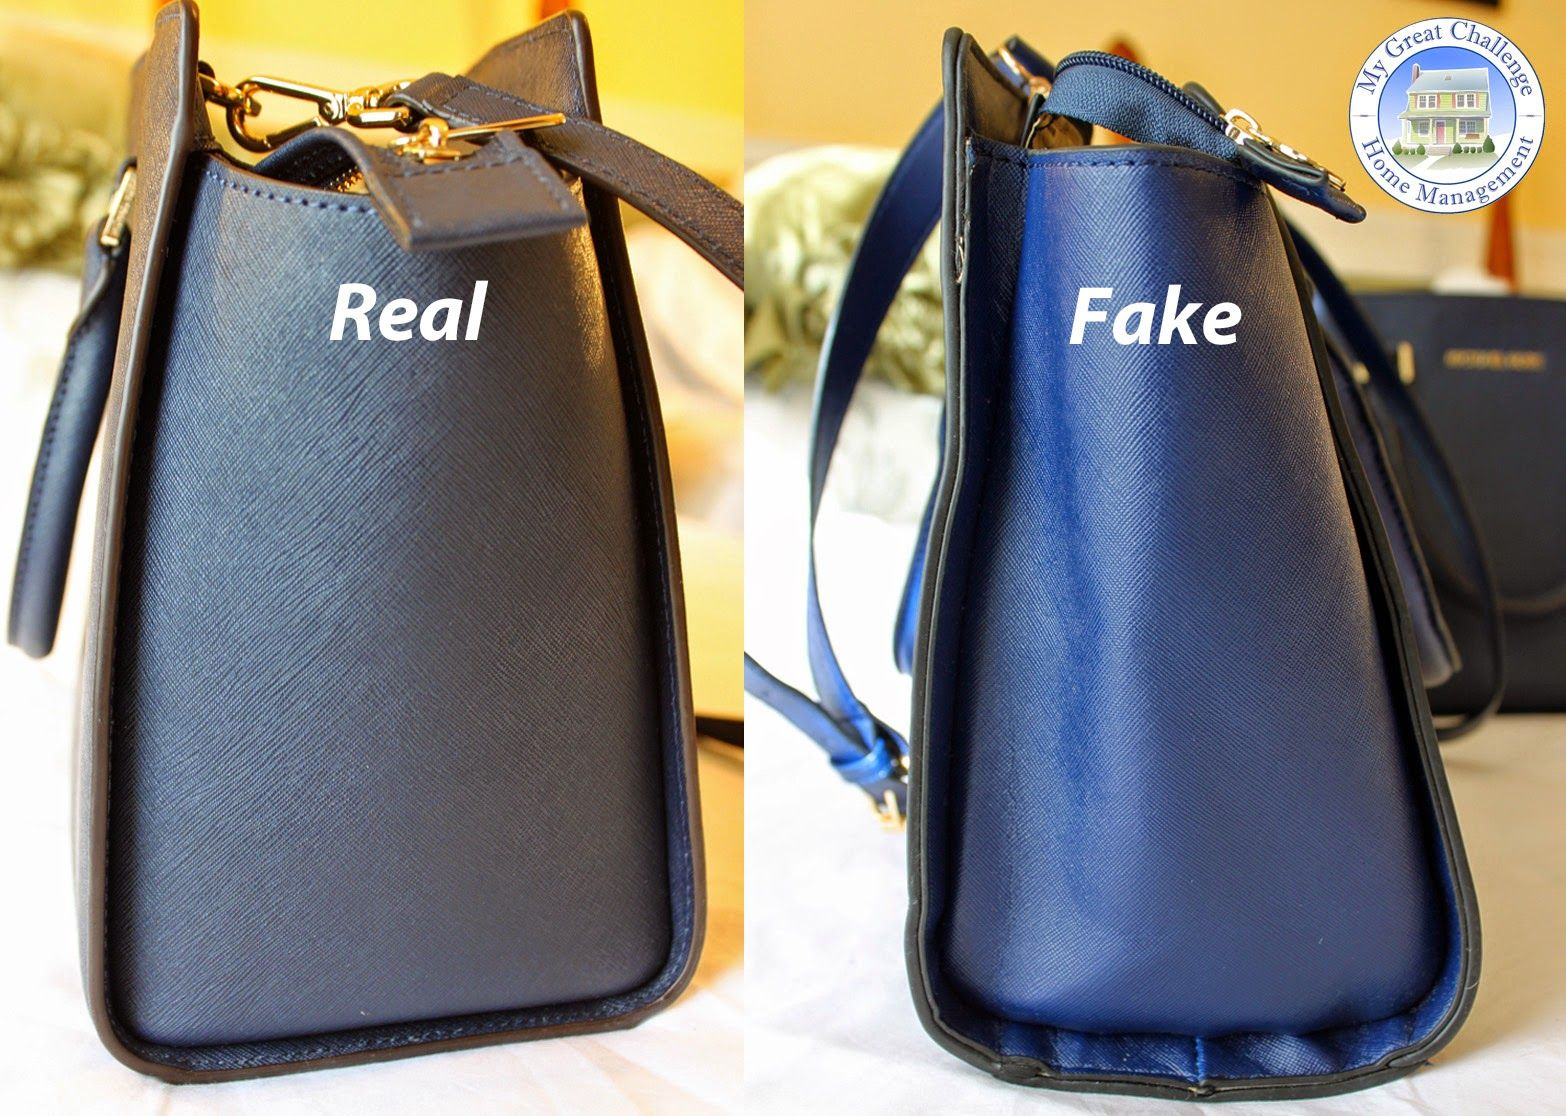 095be42c401 Michael Kors Selma - Fake VS. Real Comparison | all about bags ...